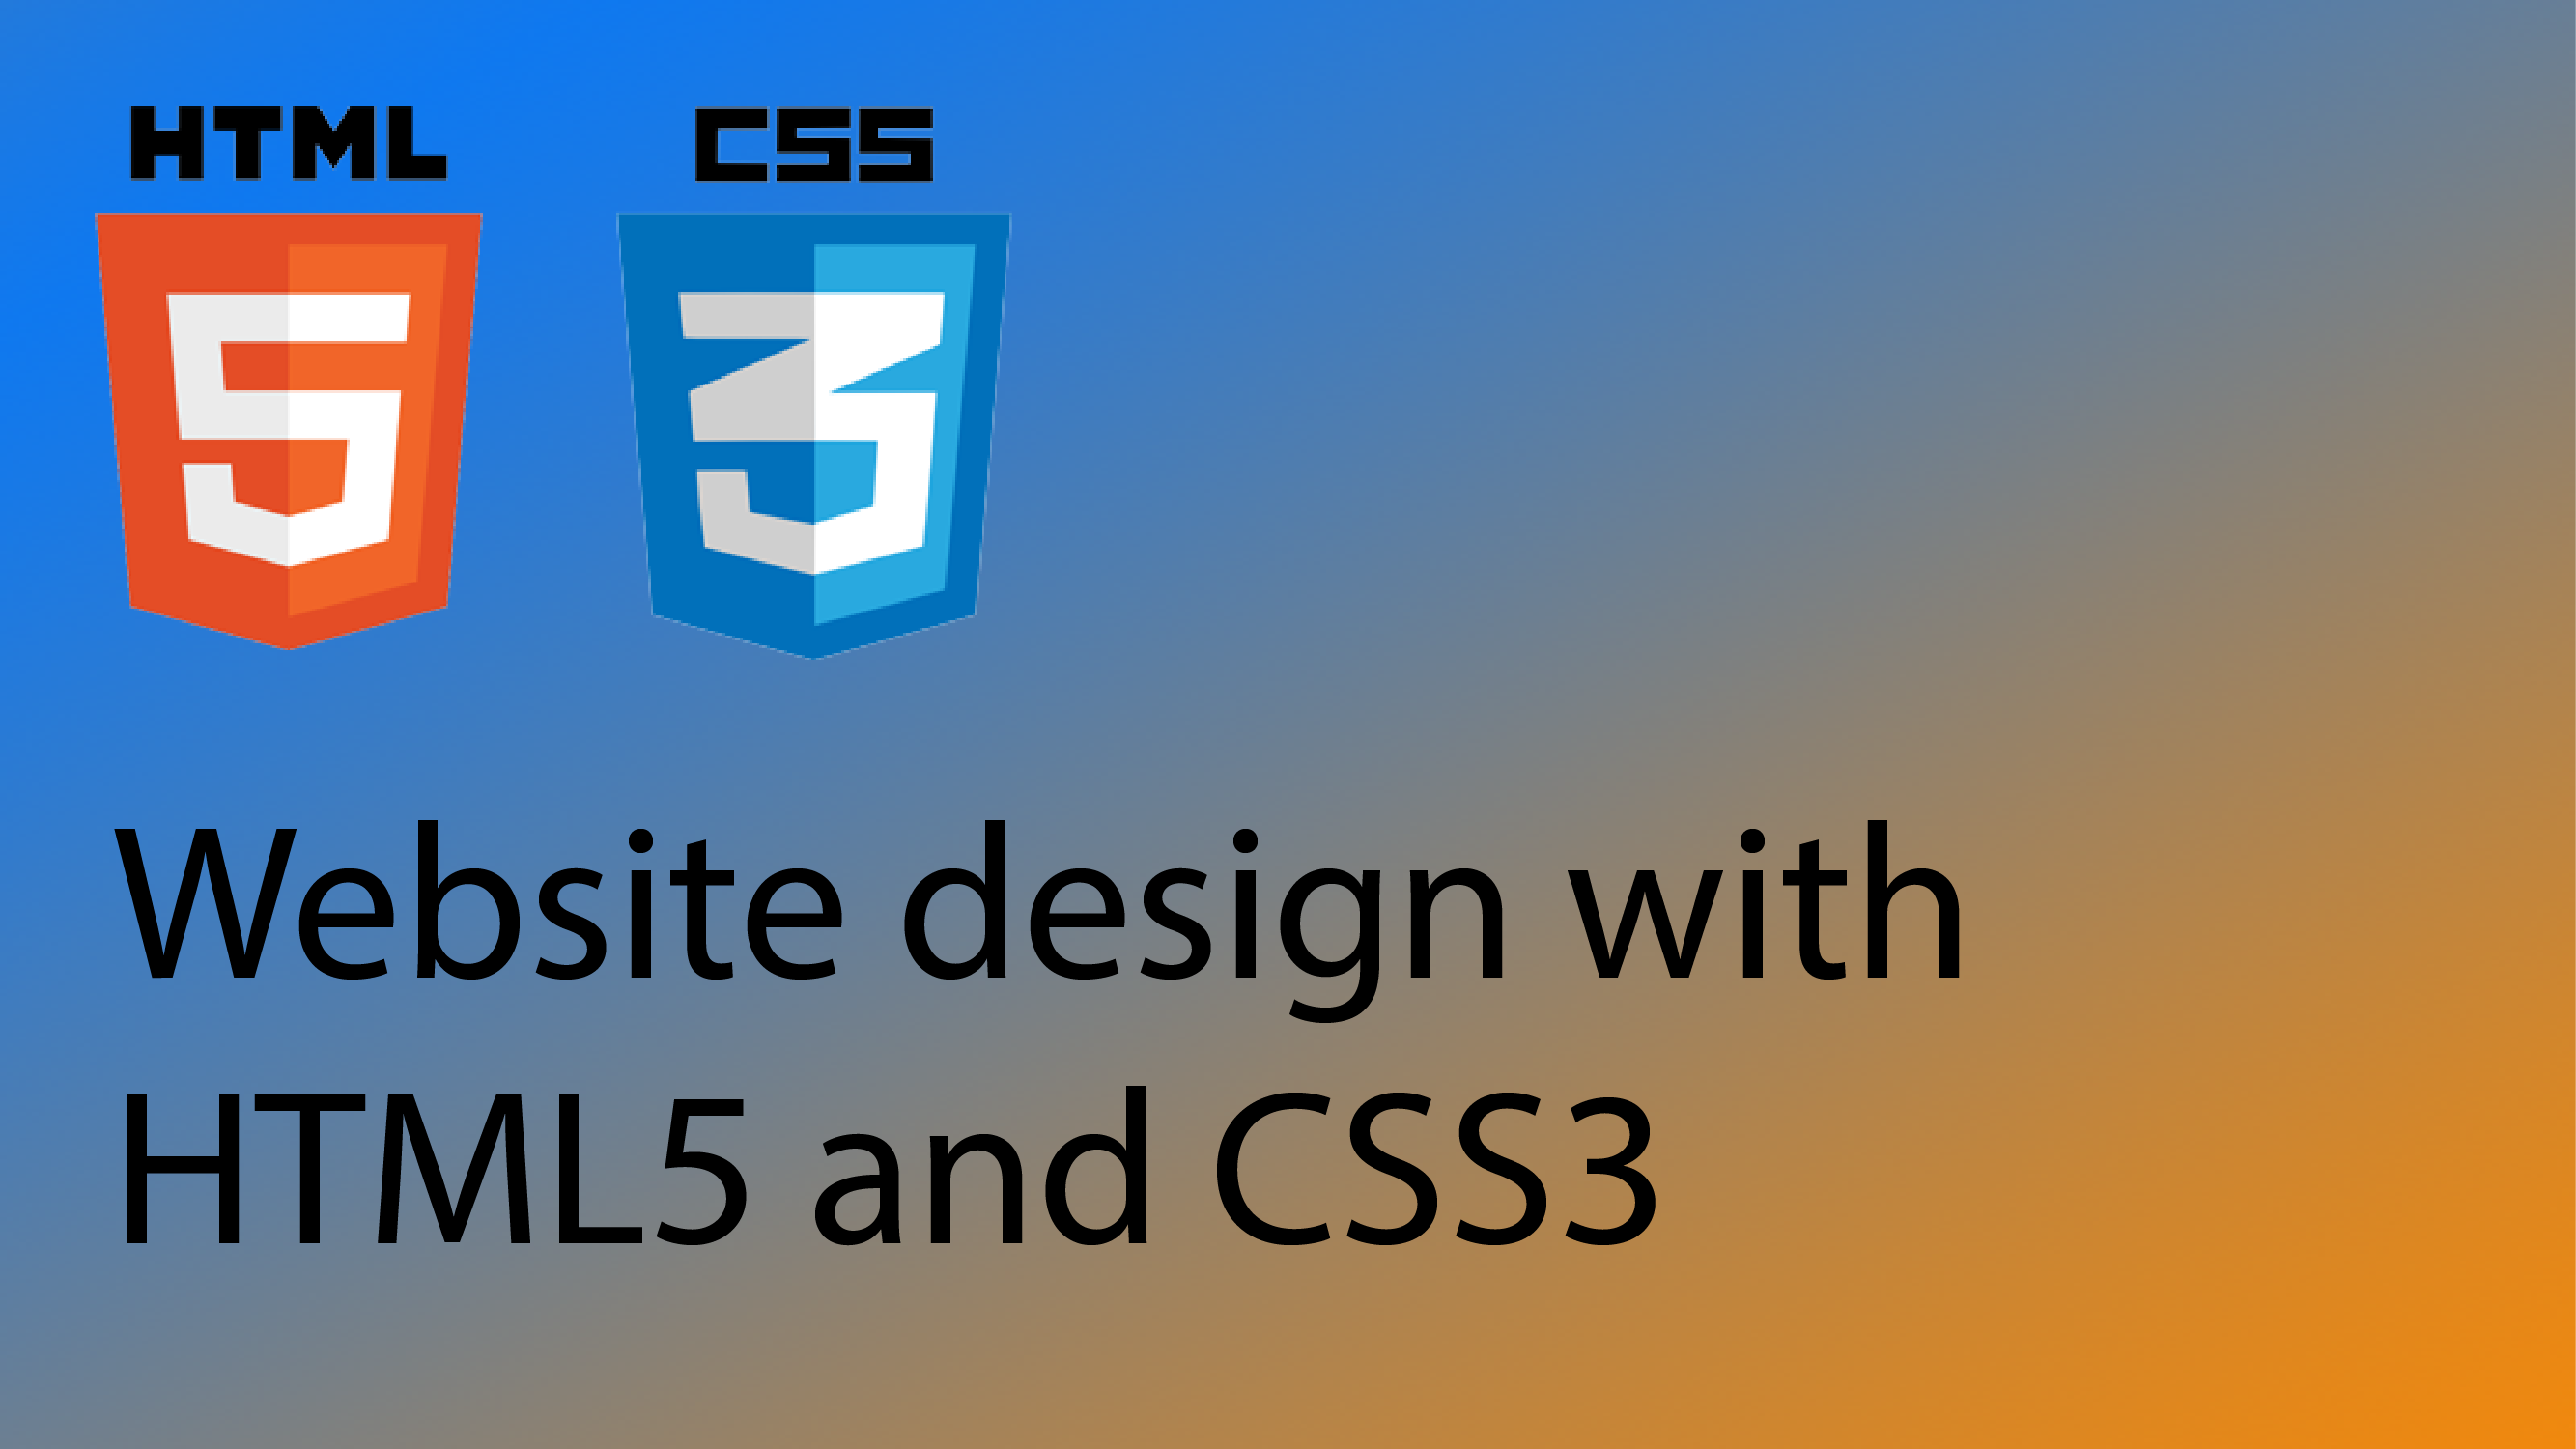 Html css codemahal welcome to the html5 and css3 tutorial series if youre looking to learn how to design and develop your own website then you are in the right place baditri Image collections